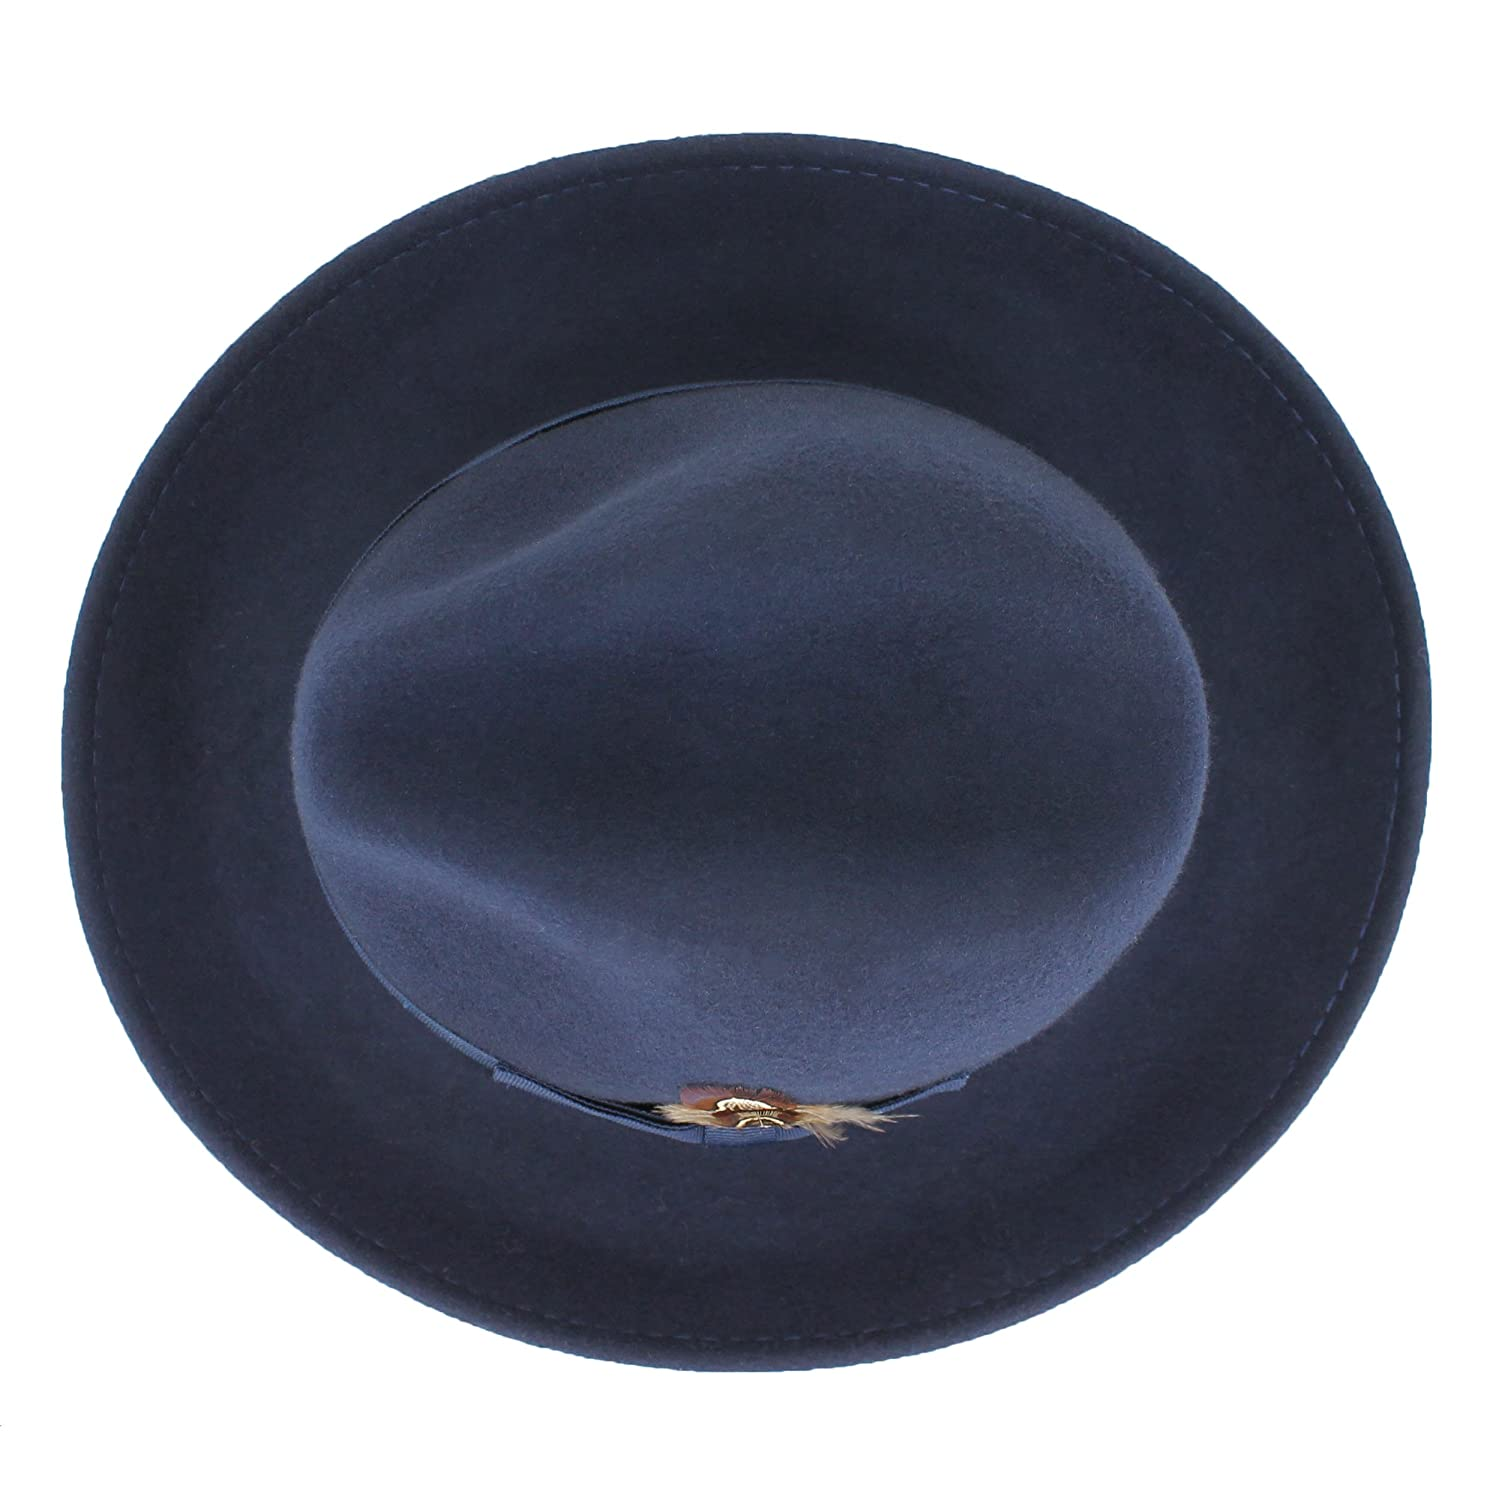 7778d1774cfd6 Belfry Crushable Dress Fedora Mens Vintage Style Hat 100 % Pure Wool in  Black Blue Grey ...